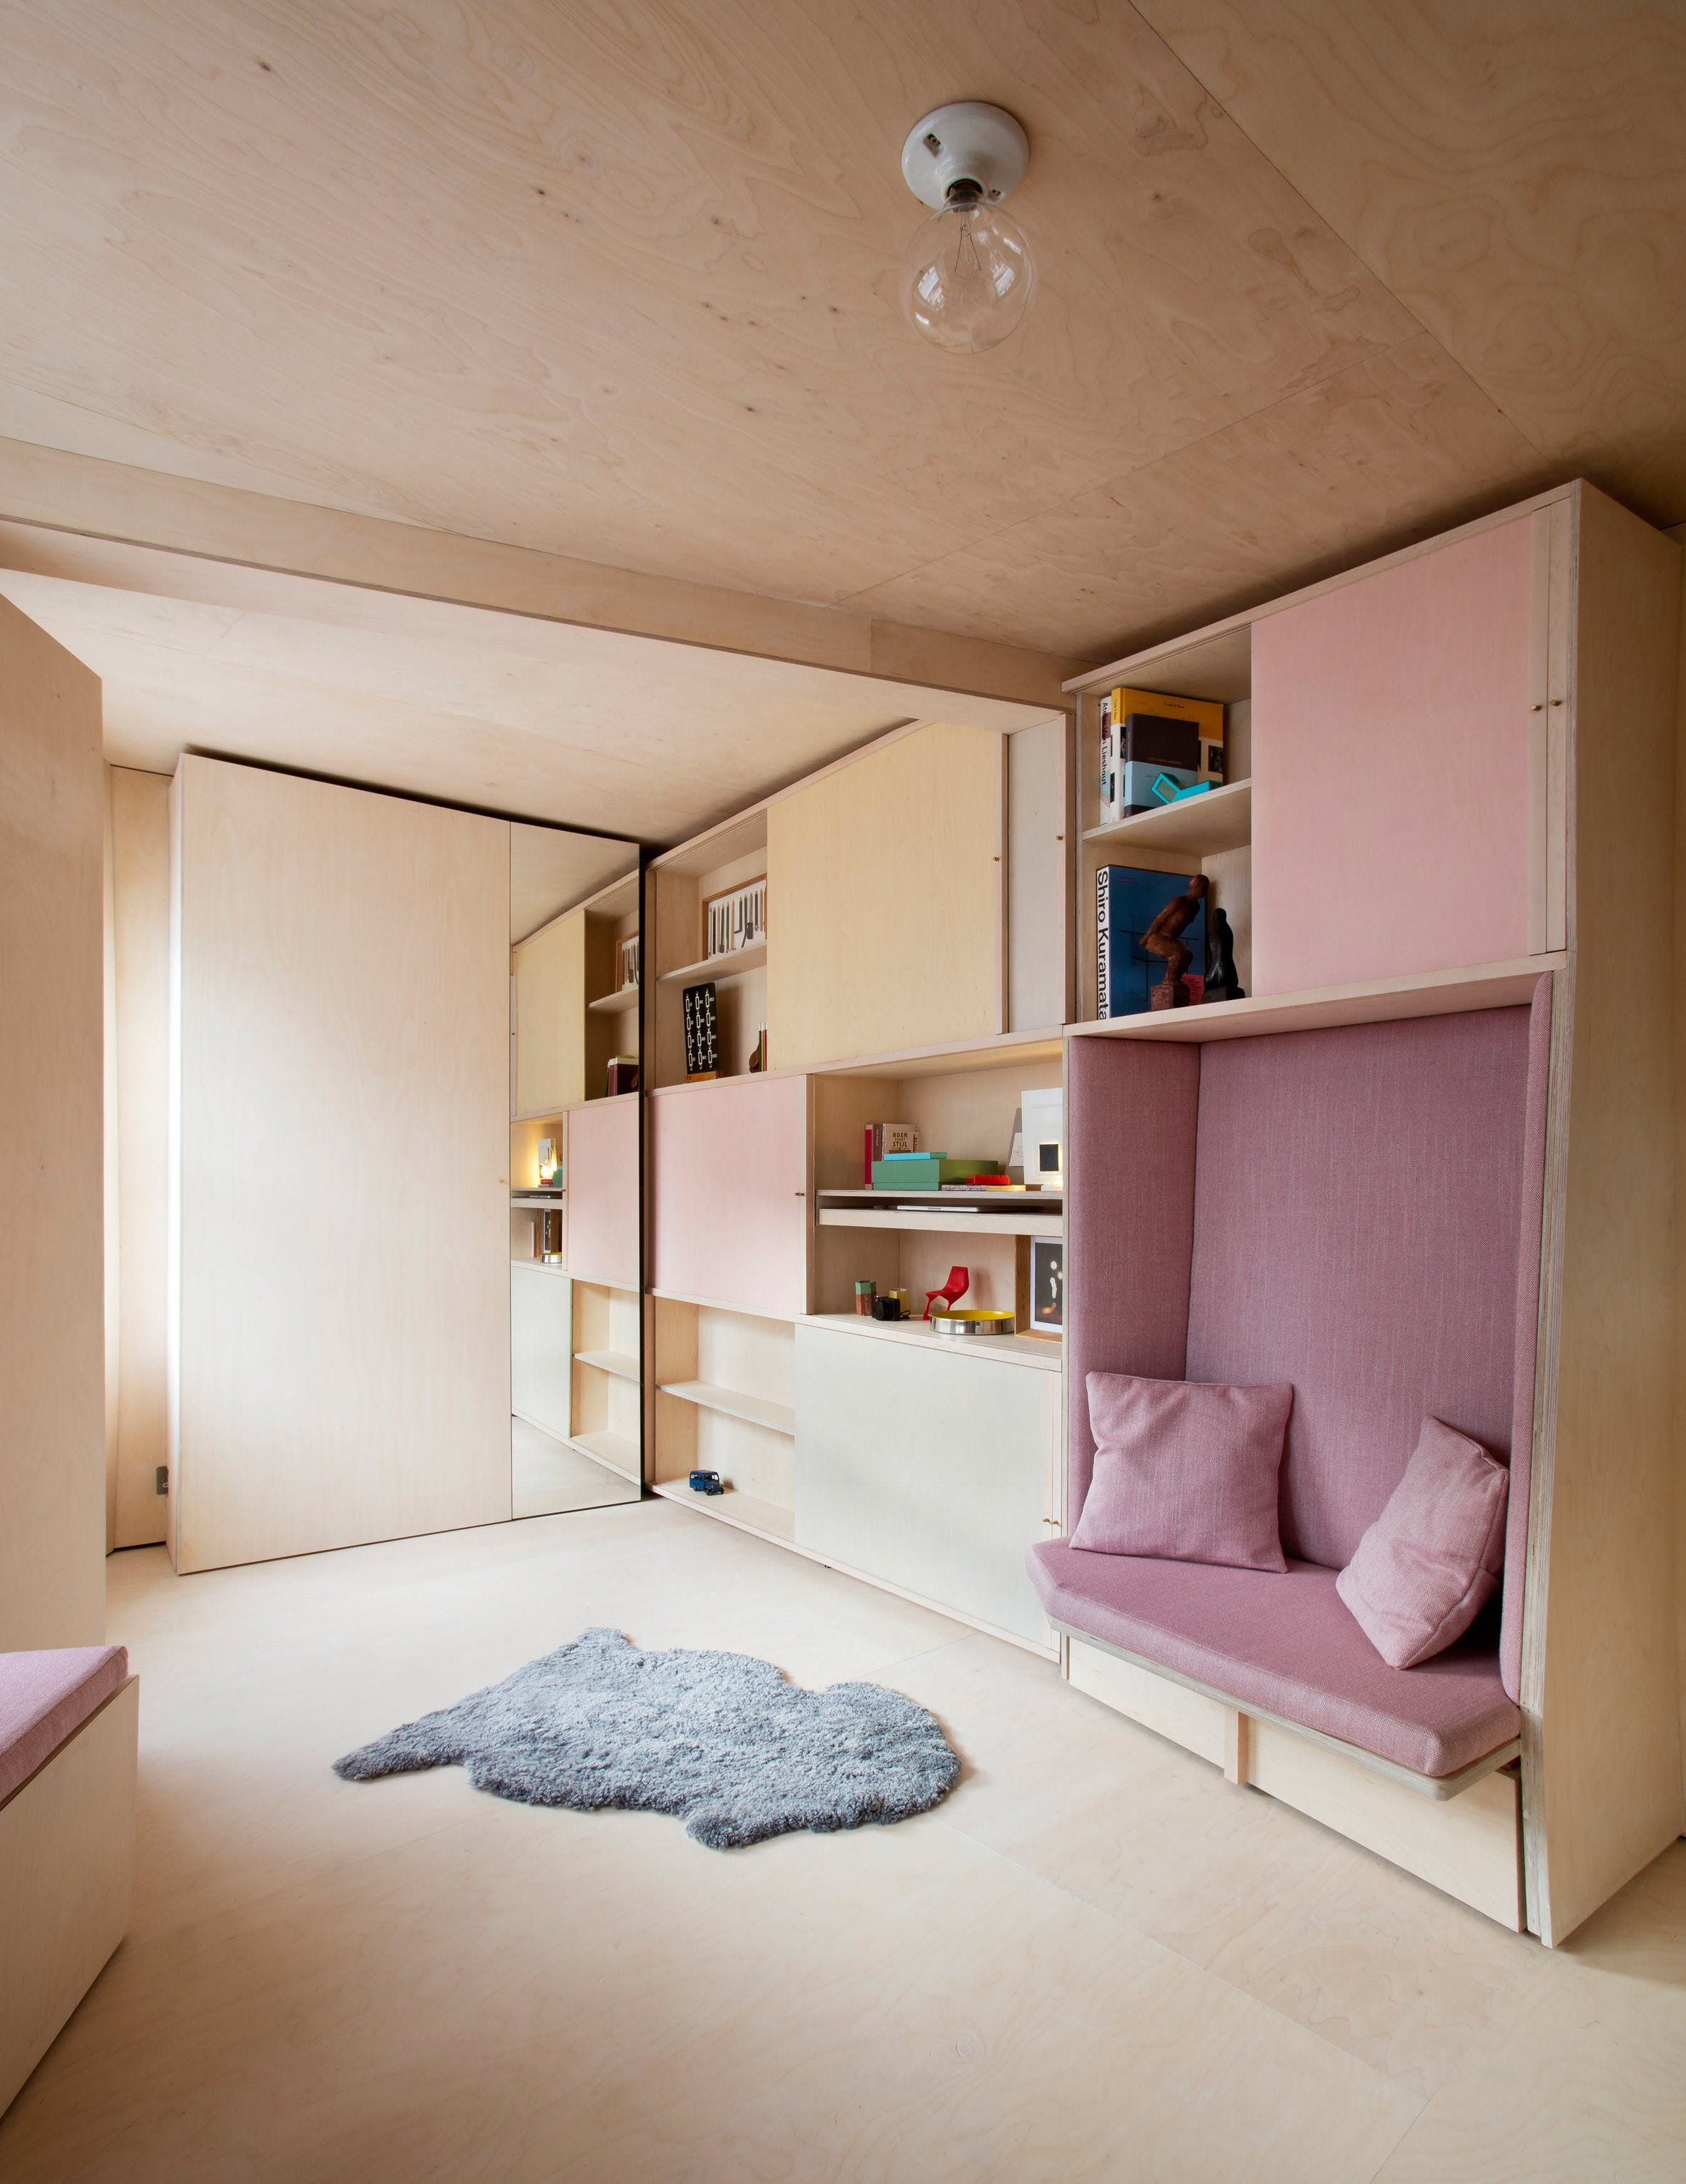 Schrankbett London This Might Be London S Smallest Home It S Surprisingly Livable